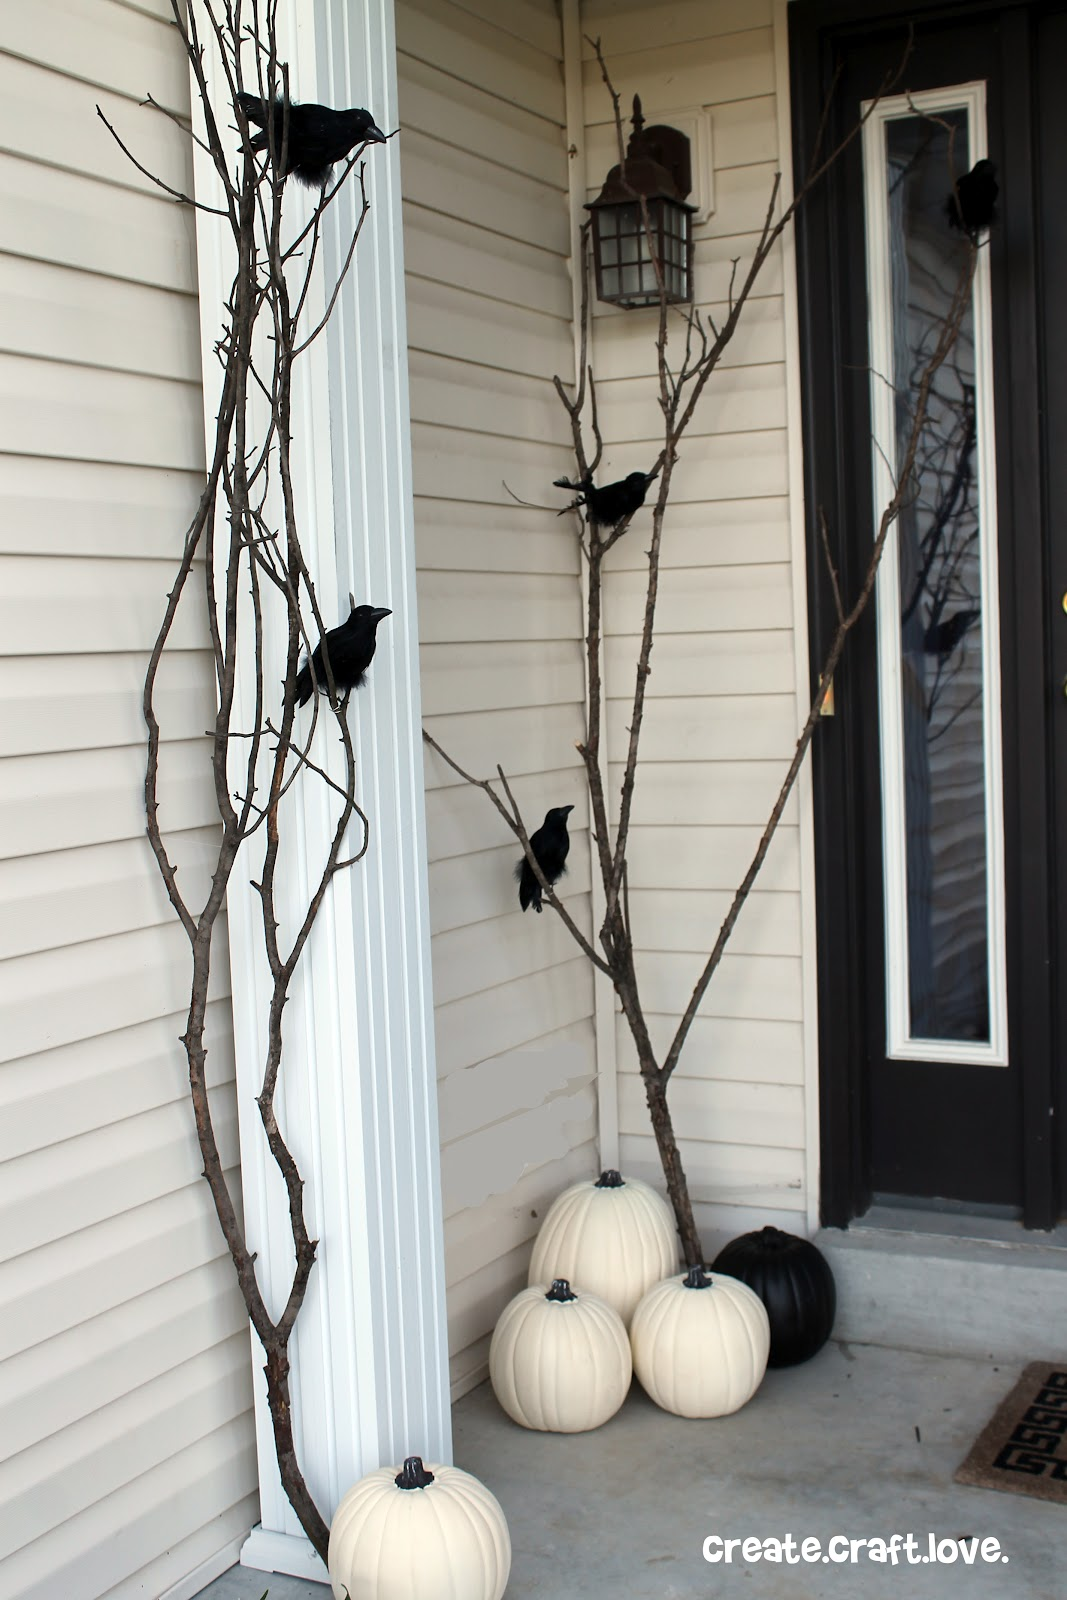 13 halloween porch ideas - lolly jane